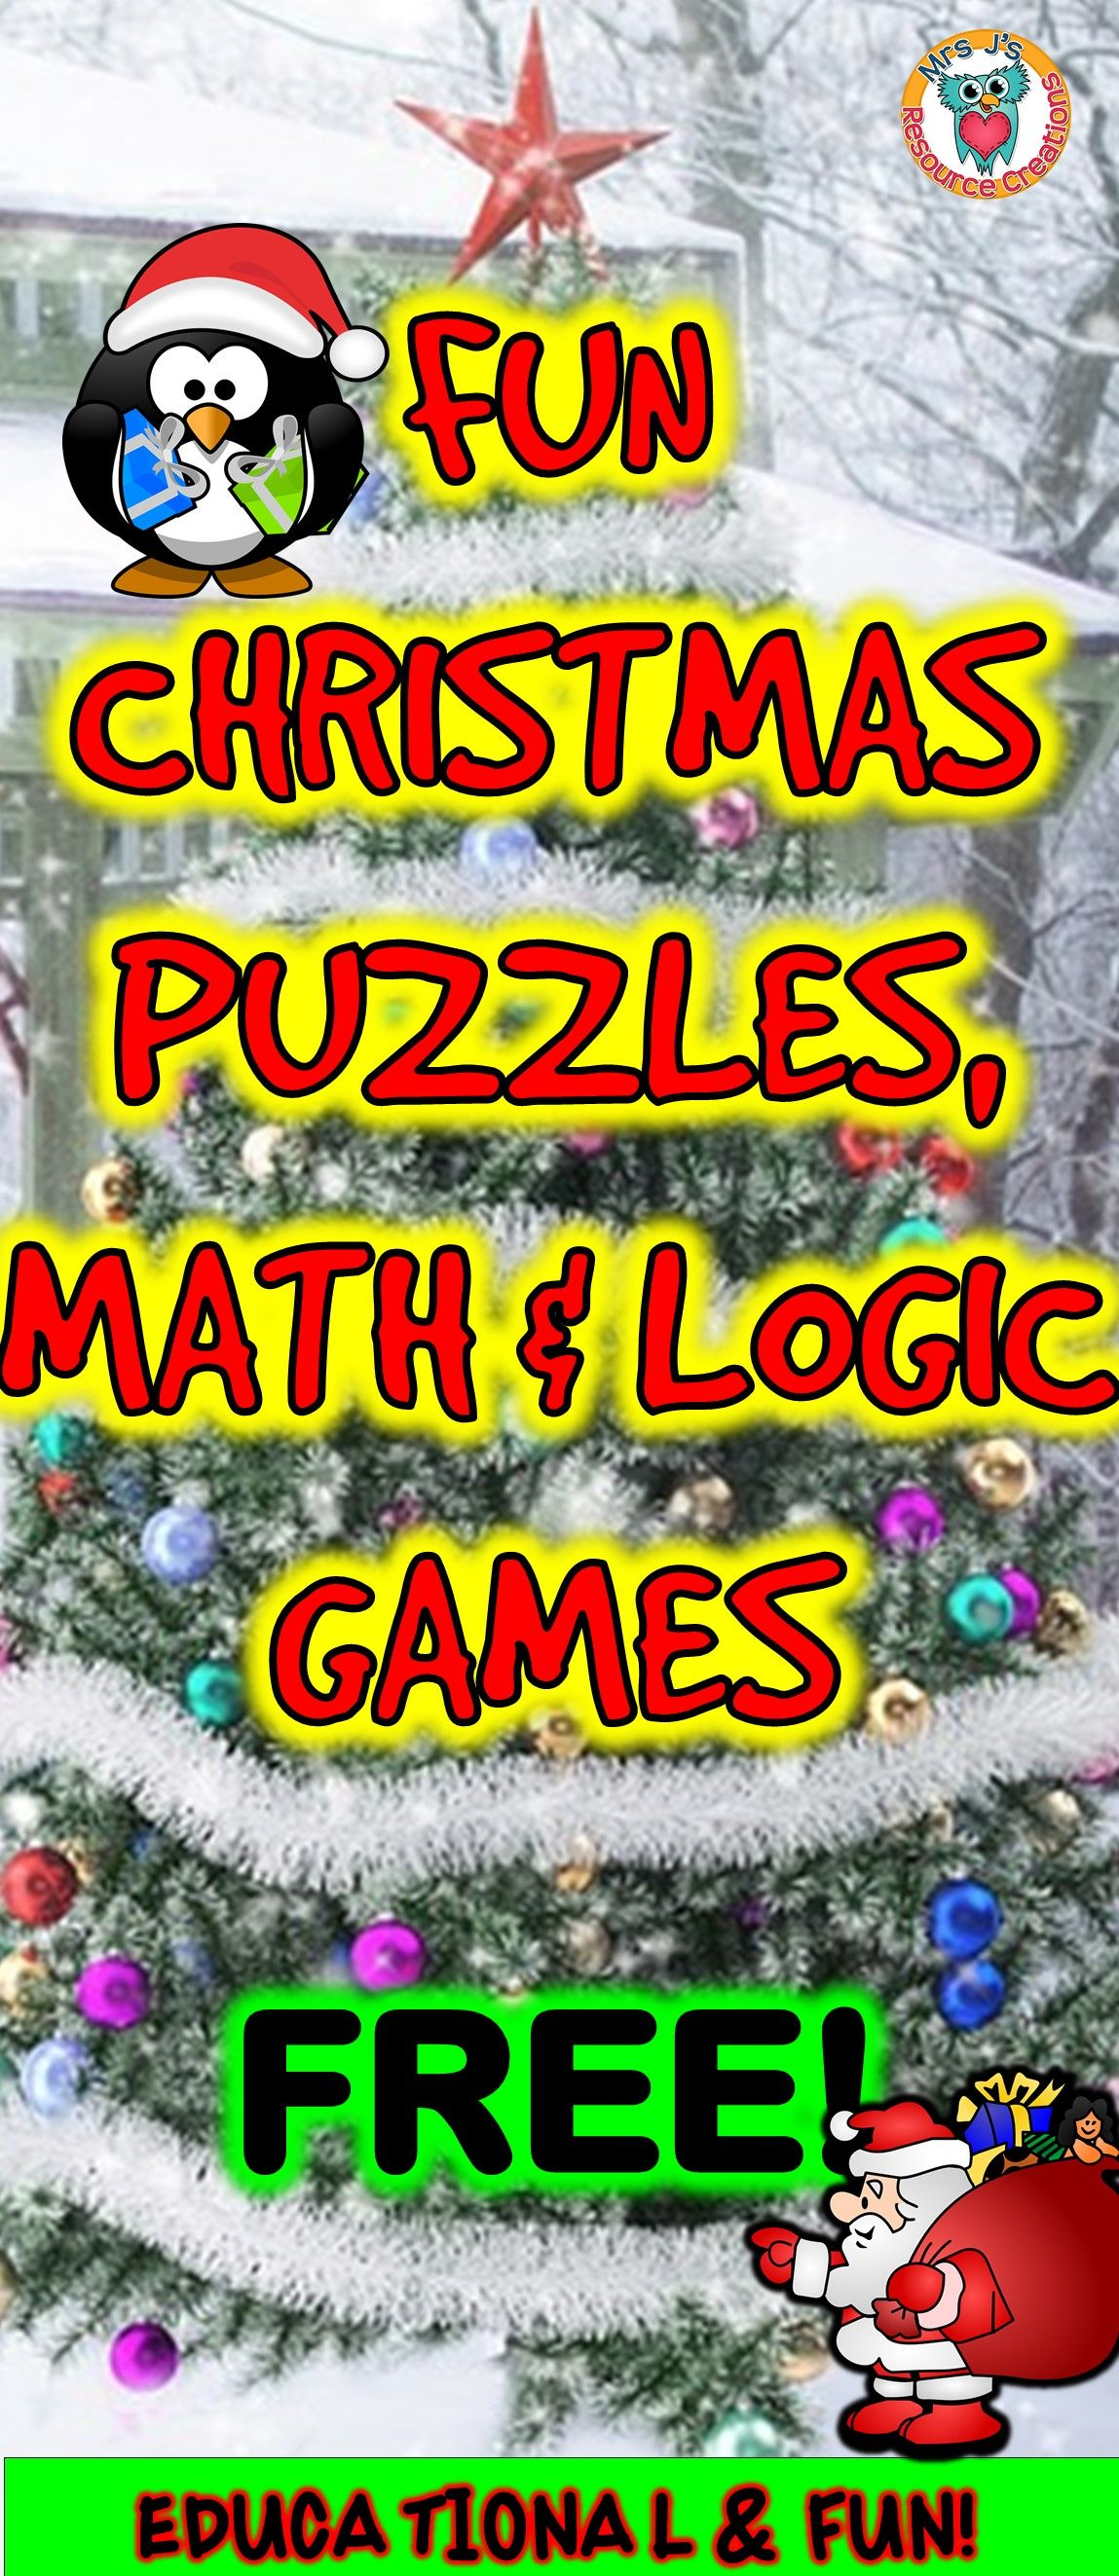 Christmas puzzles, math and logic games to play FREE